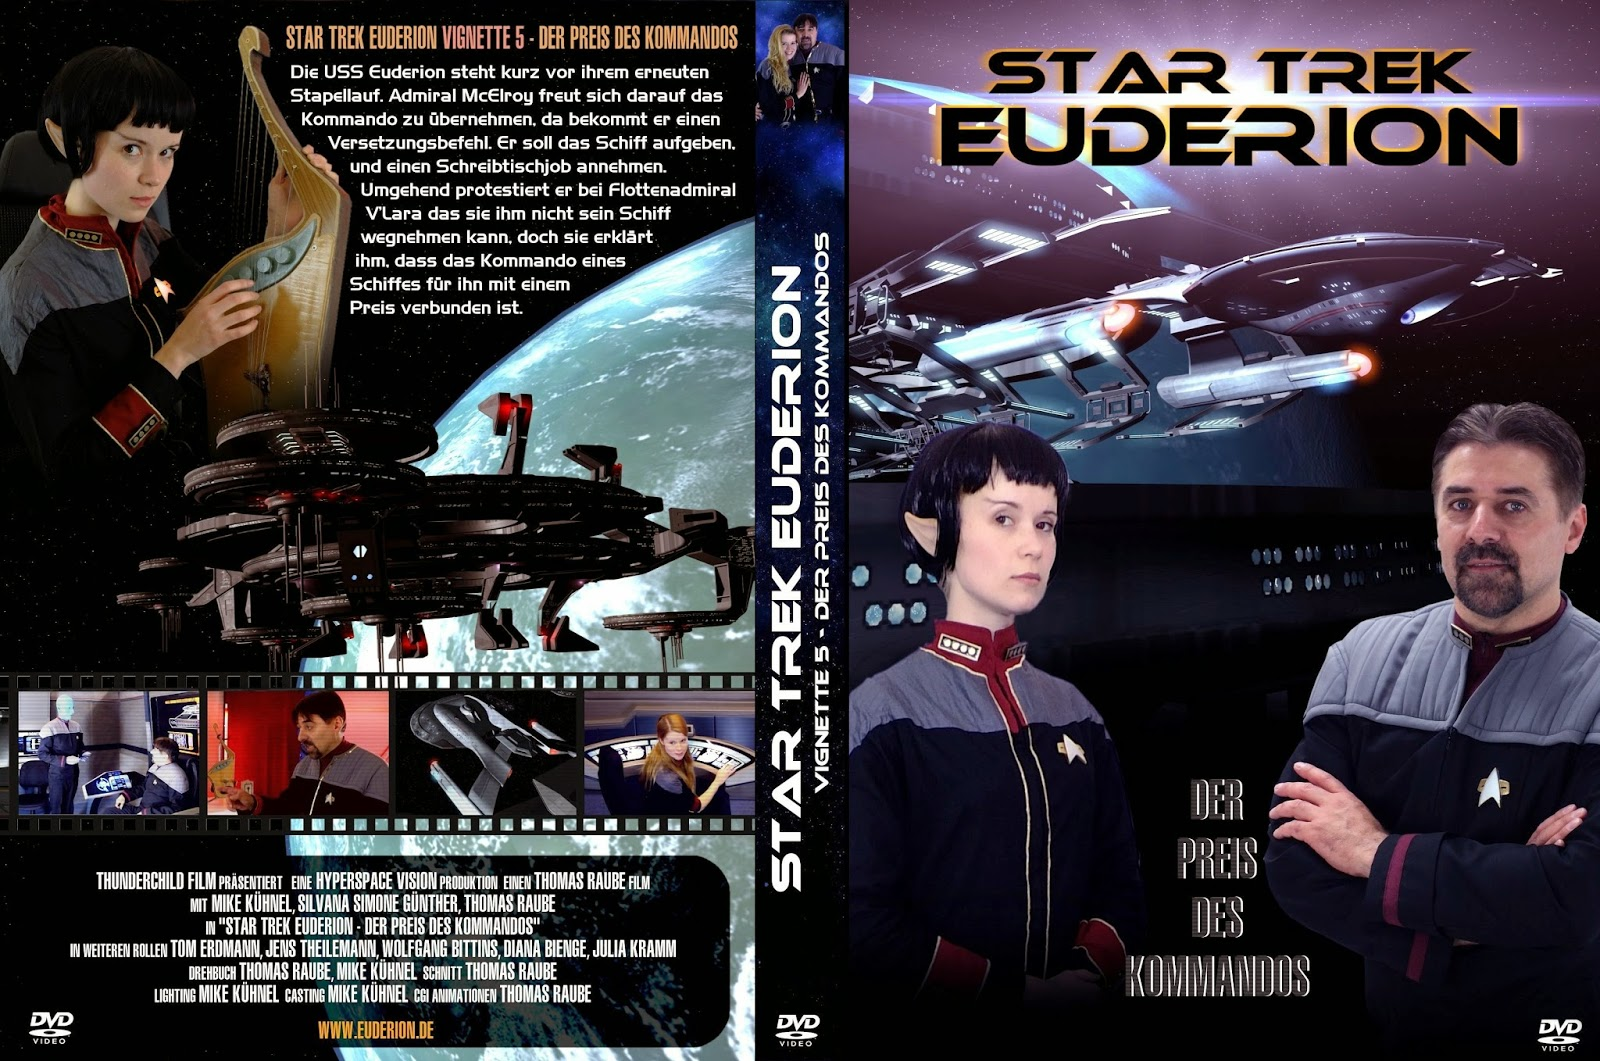 The Price of Command DVD cover